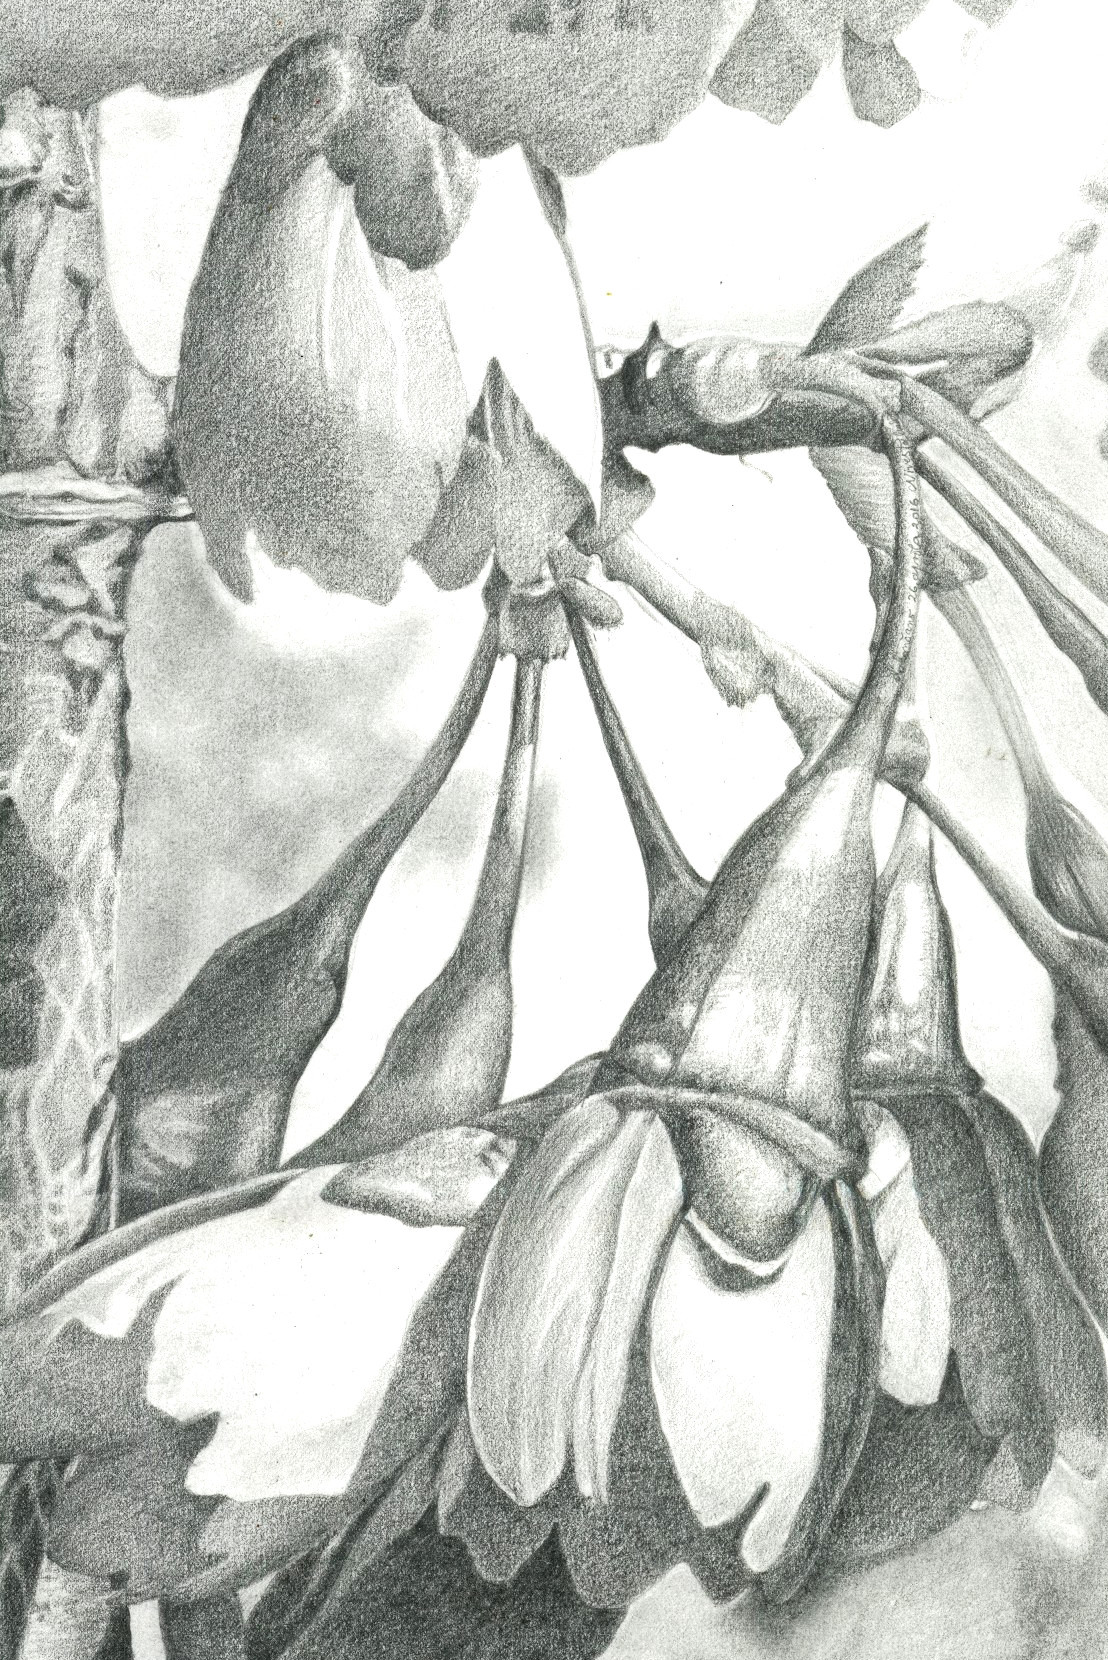 ROSACEAE Graphite Pencil Drawing on Behance